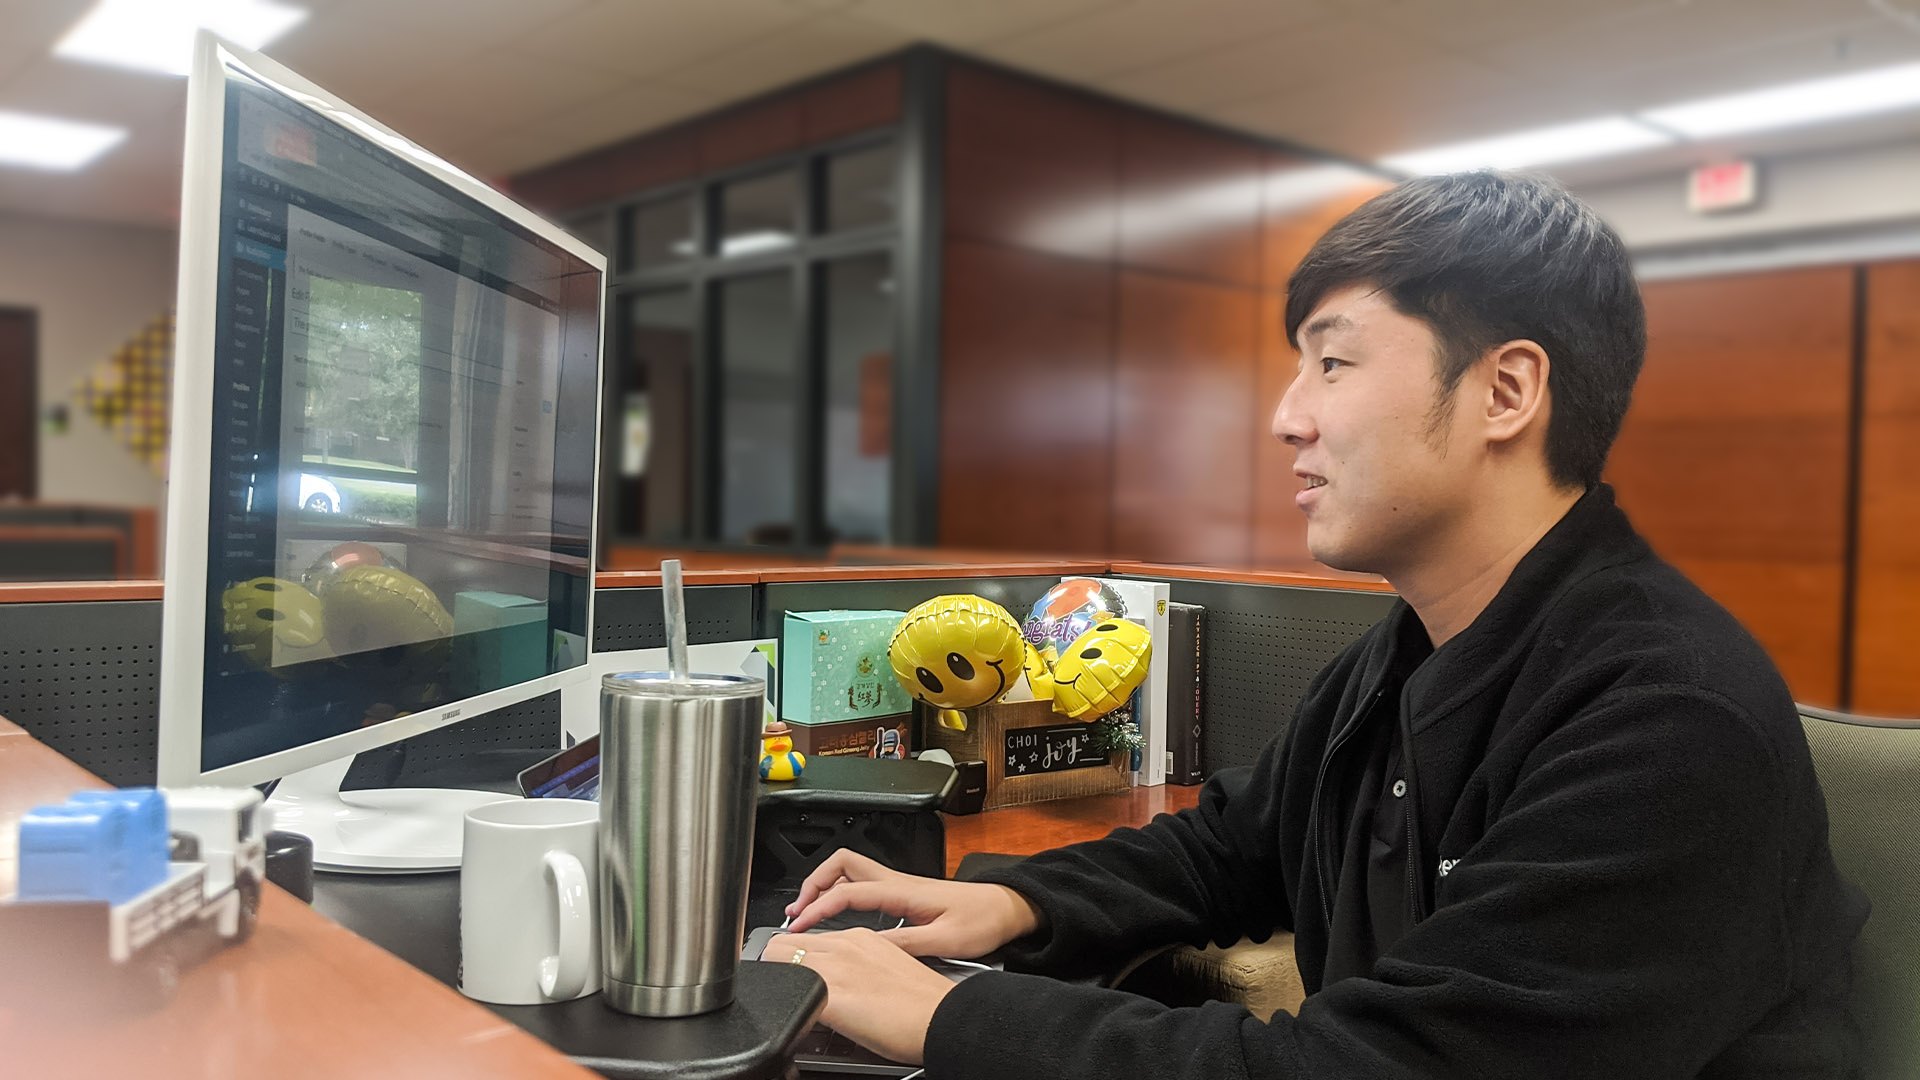 Thomas Choi works at his desk in the office.